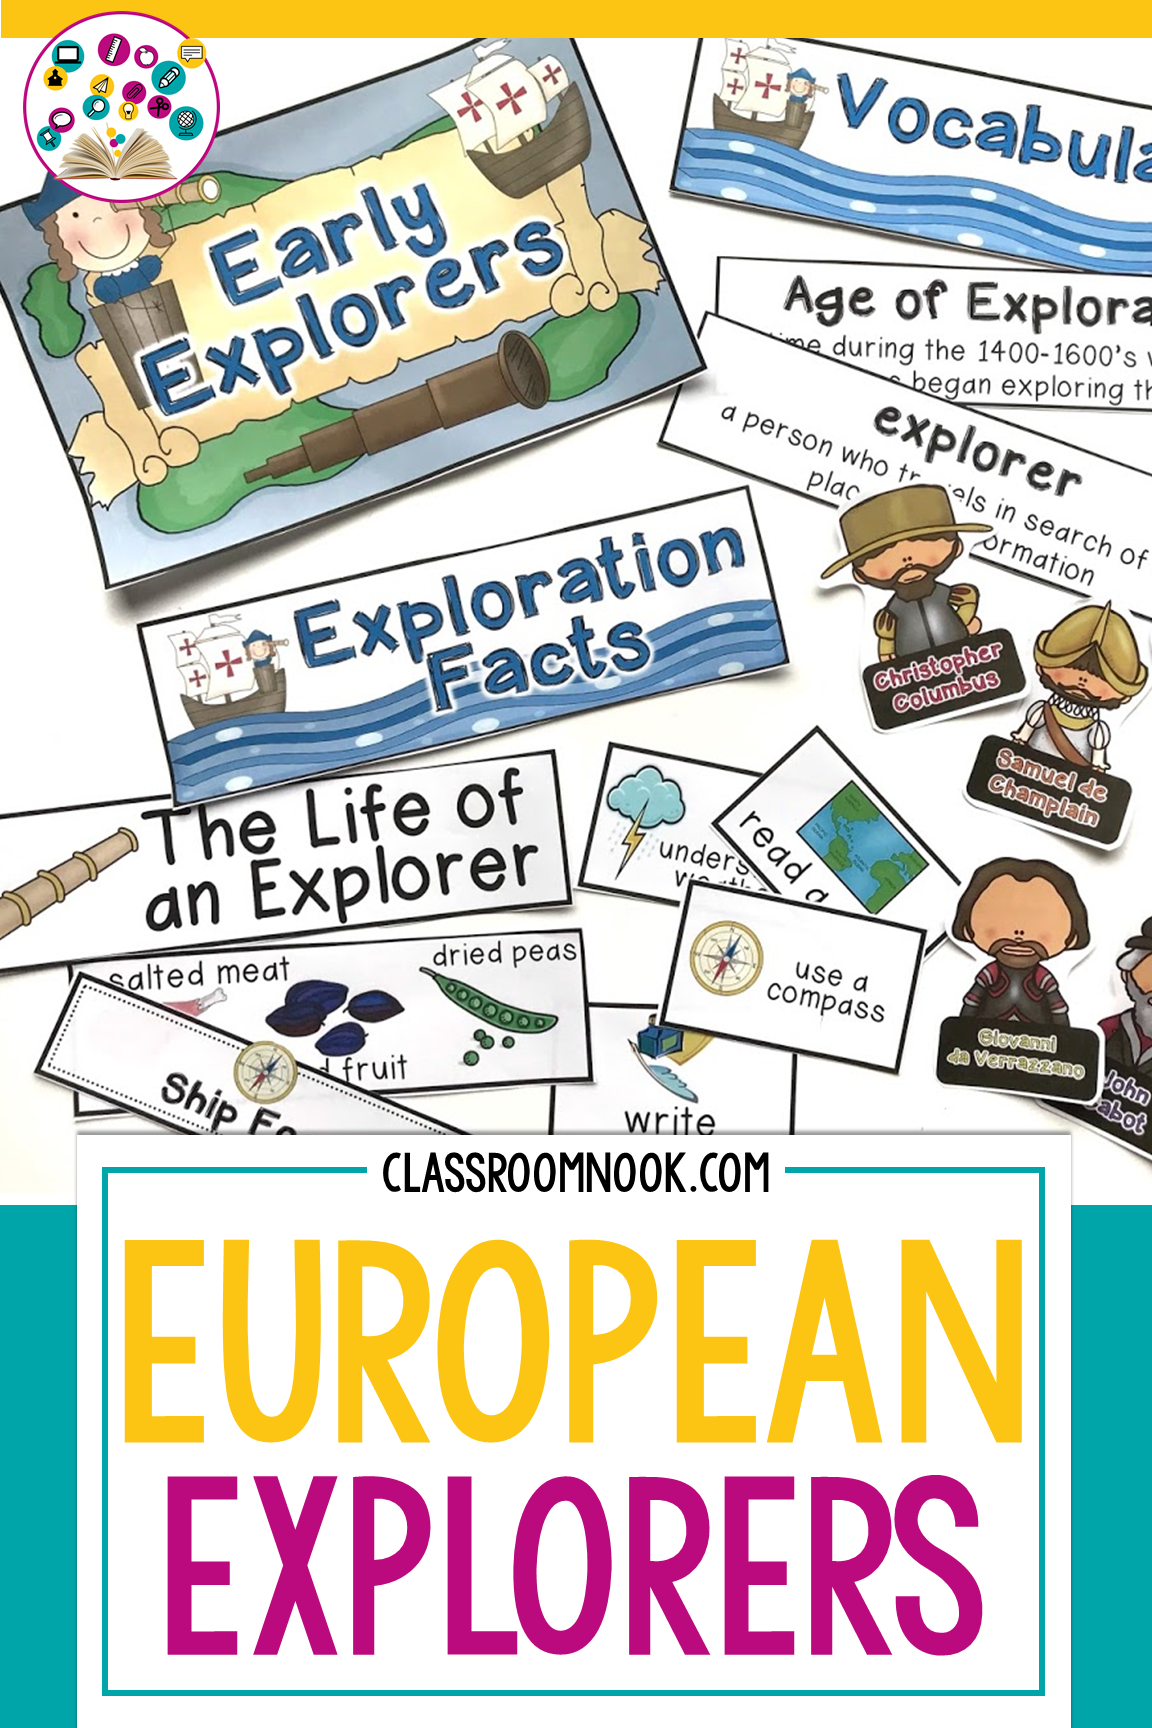 Teaching Early European Explorers   European explorers [ 1728 x 1152 Pixel ]